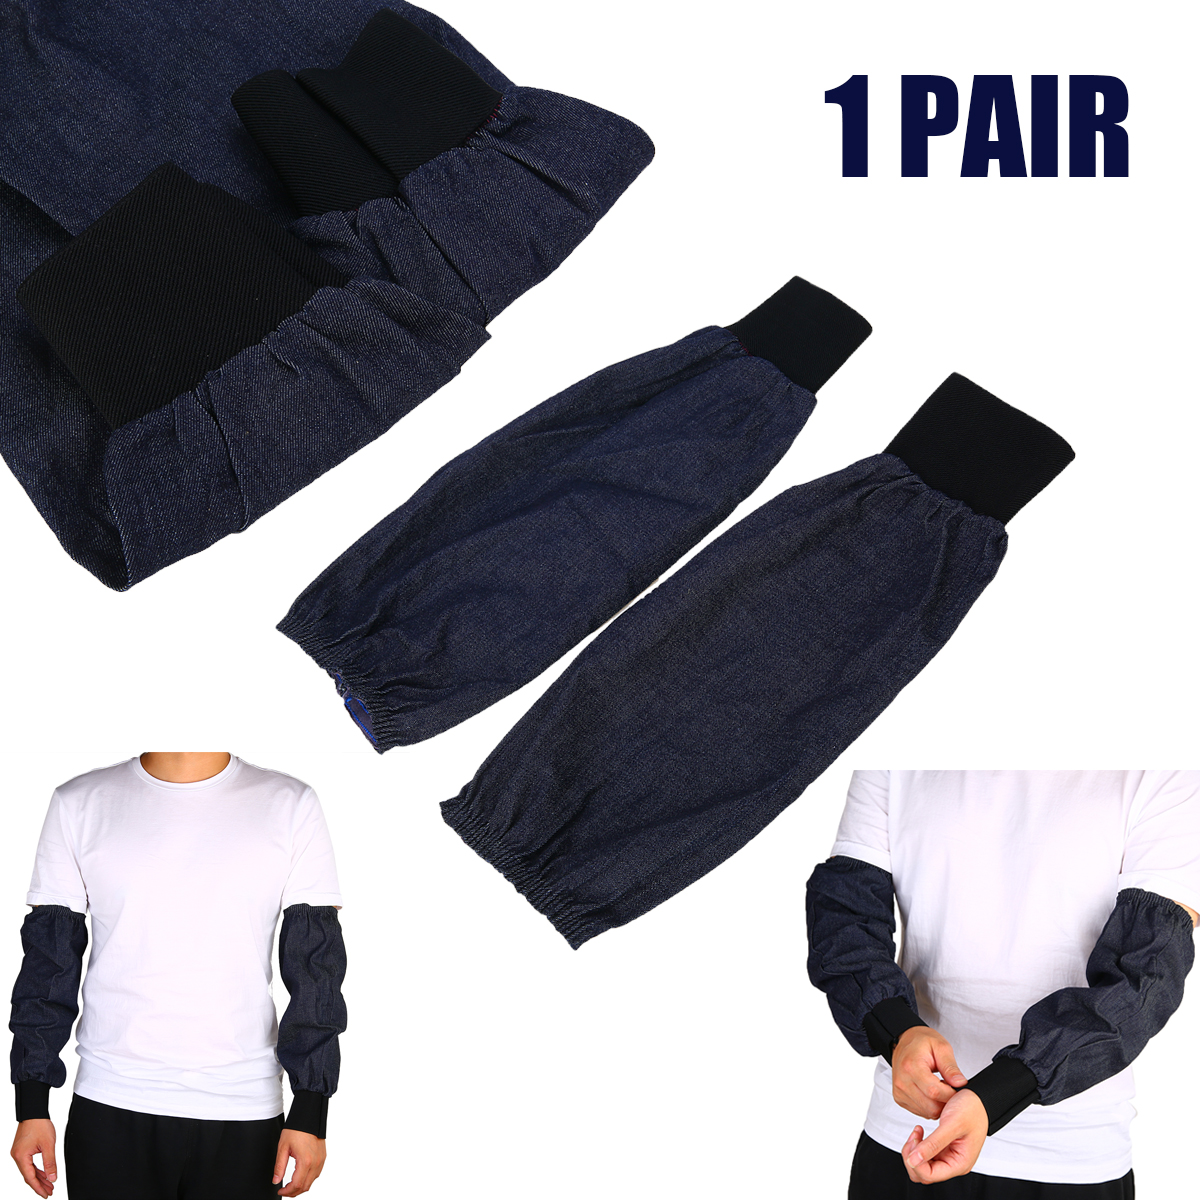 1 Pair Welding Protection Arm Sleeves Denim Working Safety Sleeves Handing Cut Resistant Heat Protect Arm Guard Welding Tools